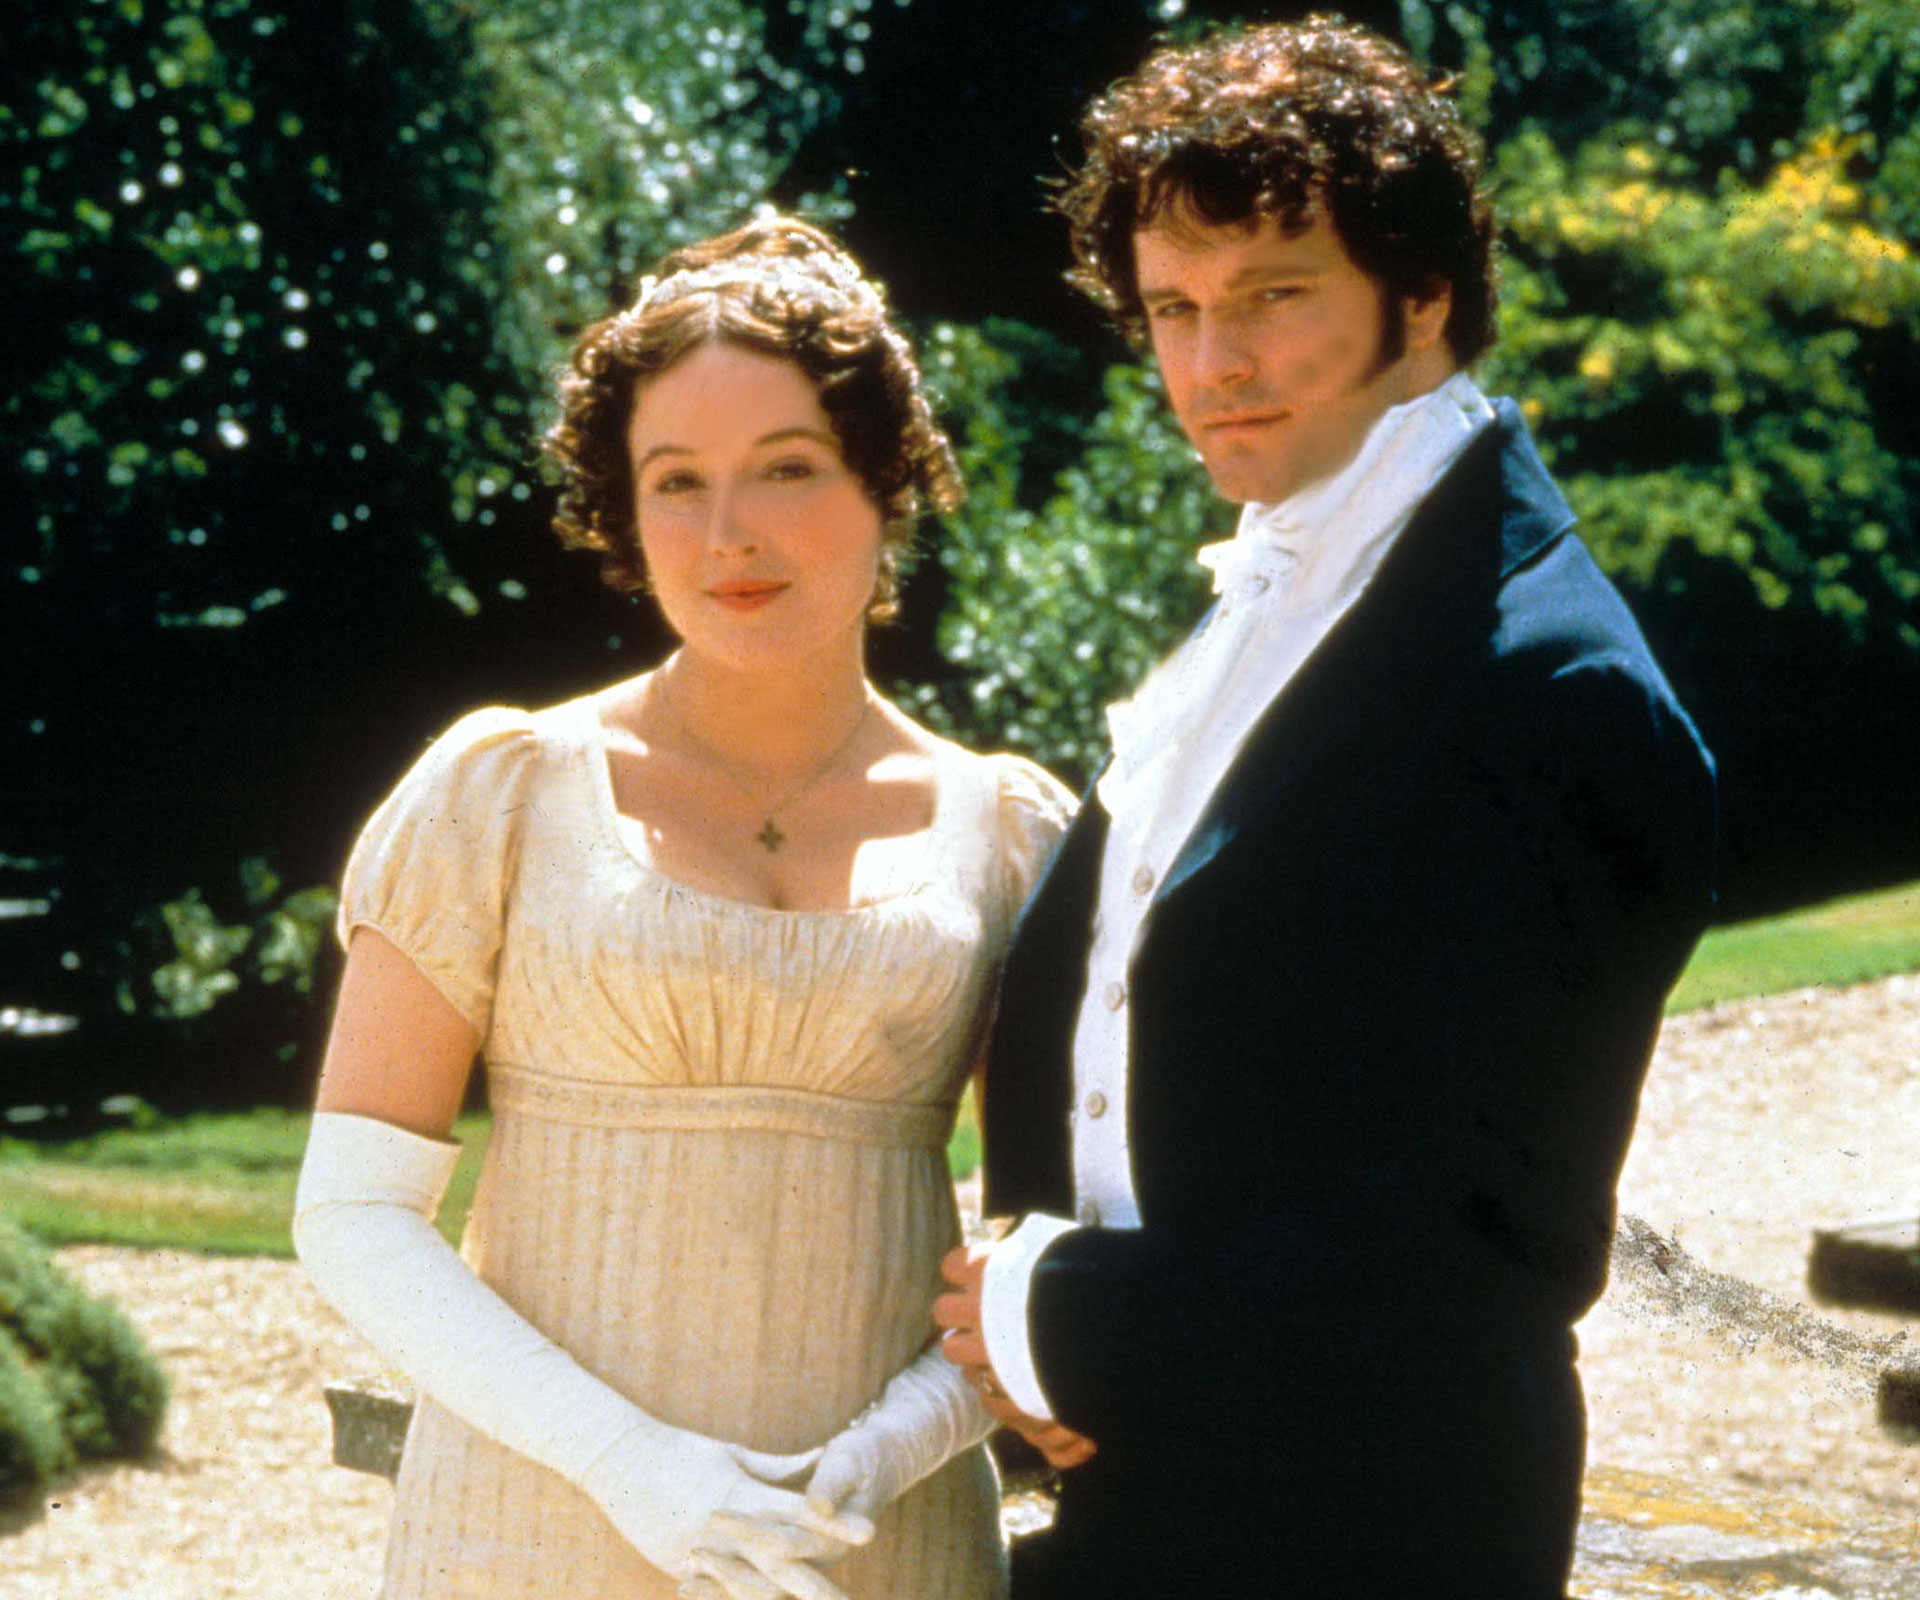 Poldark producers to adapt Pride and Prejudice for ITV